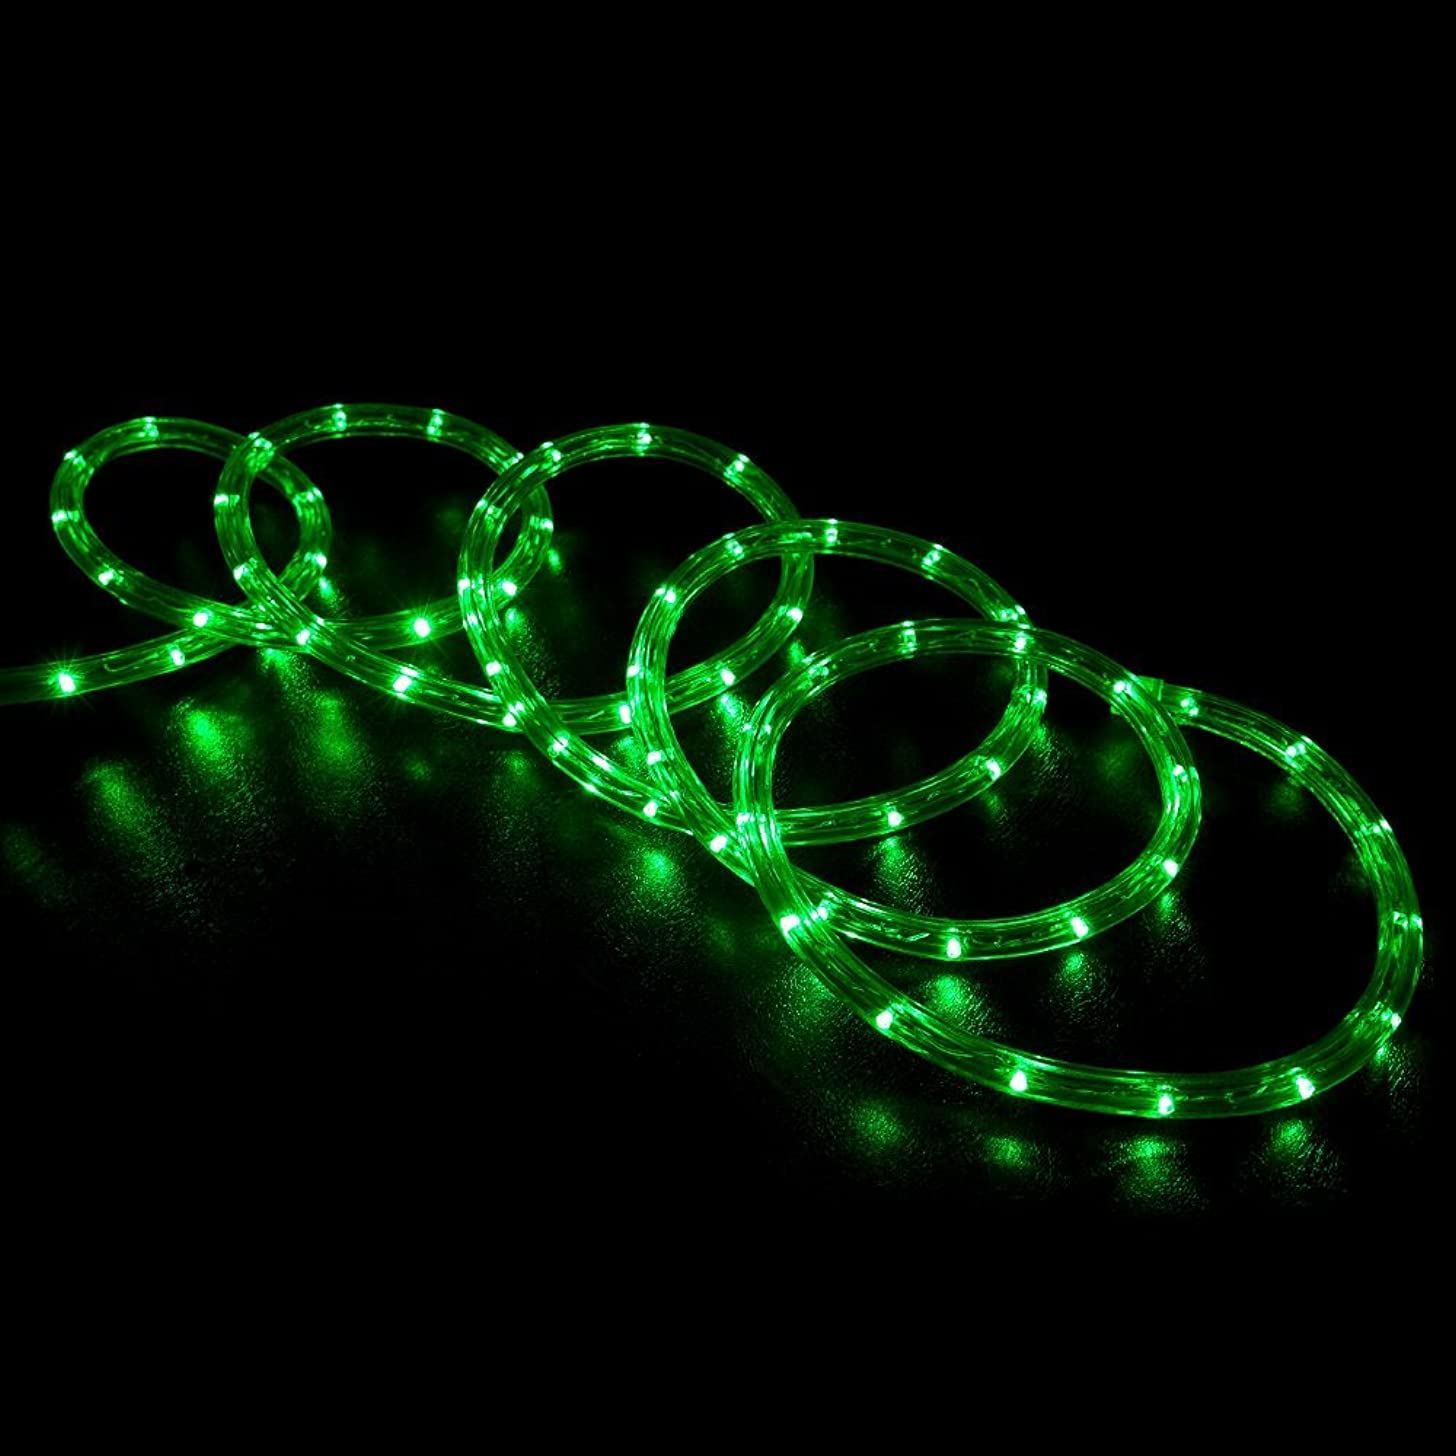 WYZworks 20' feet Green LED Rope Lights - Flexible 2 Wire Accent Holiday Christmas Party Decoration Lighting | UL Certified